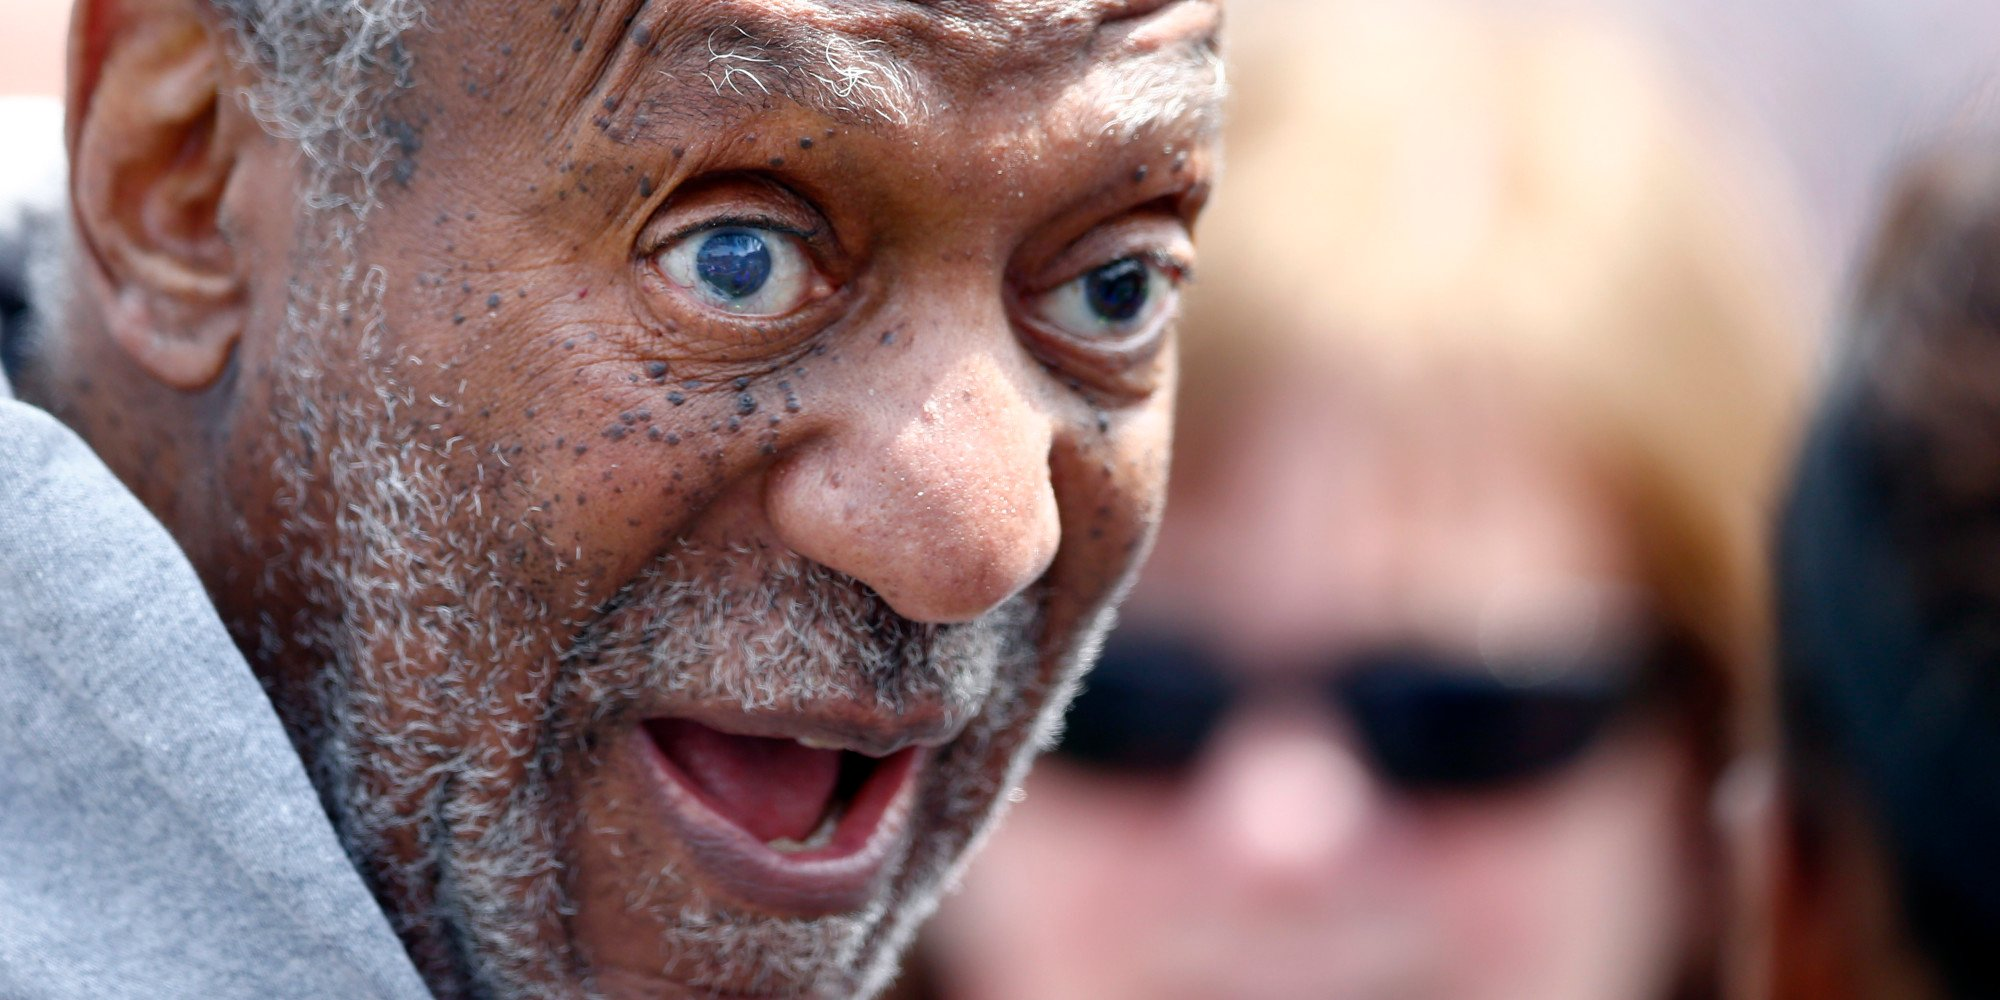 Bill Cosby has not yet taken any of the rape allegations seriously, stating the alleged victims are just being 'goofballs'